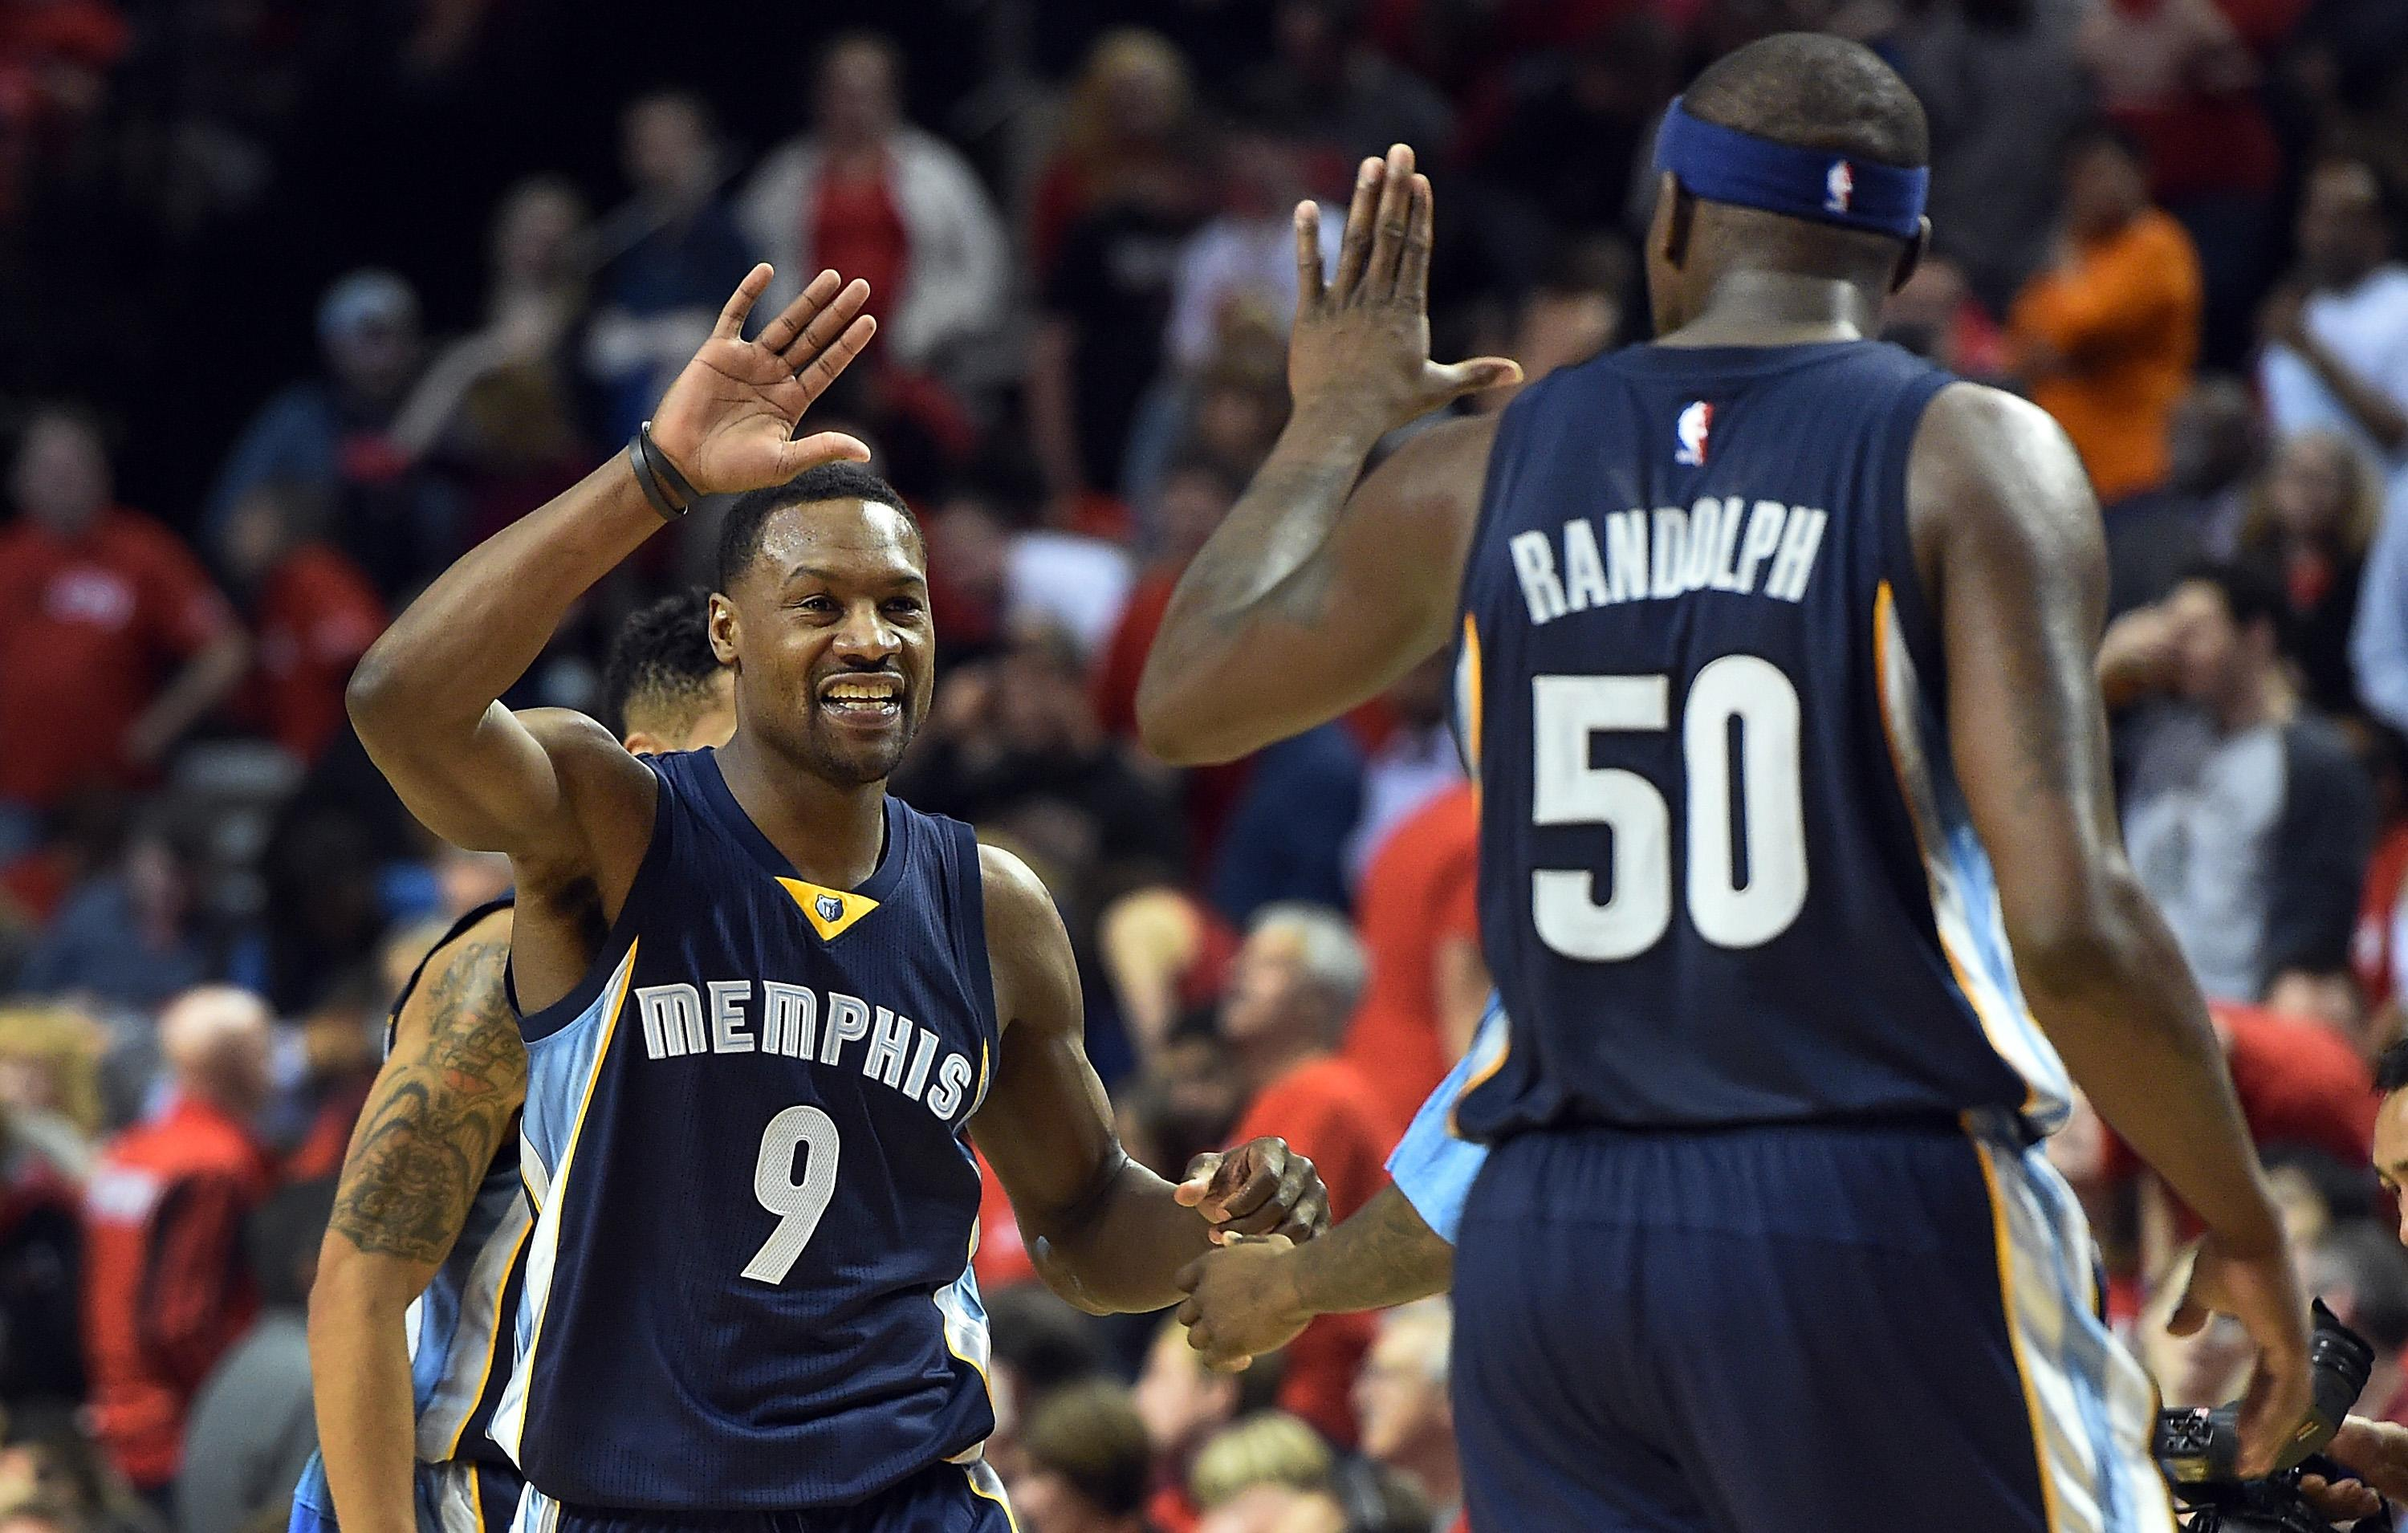 Grizzlies hold off Blazers rally to win 115-109, go up 3-0